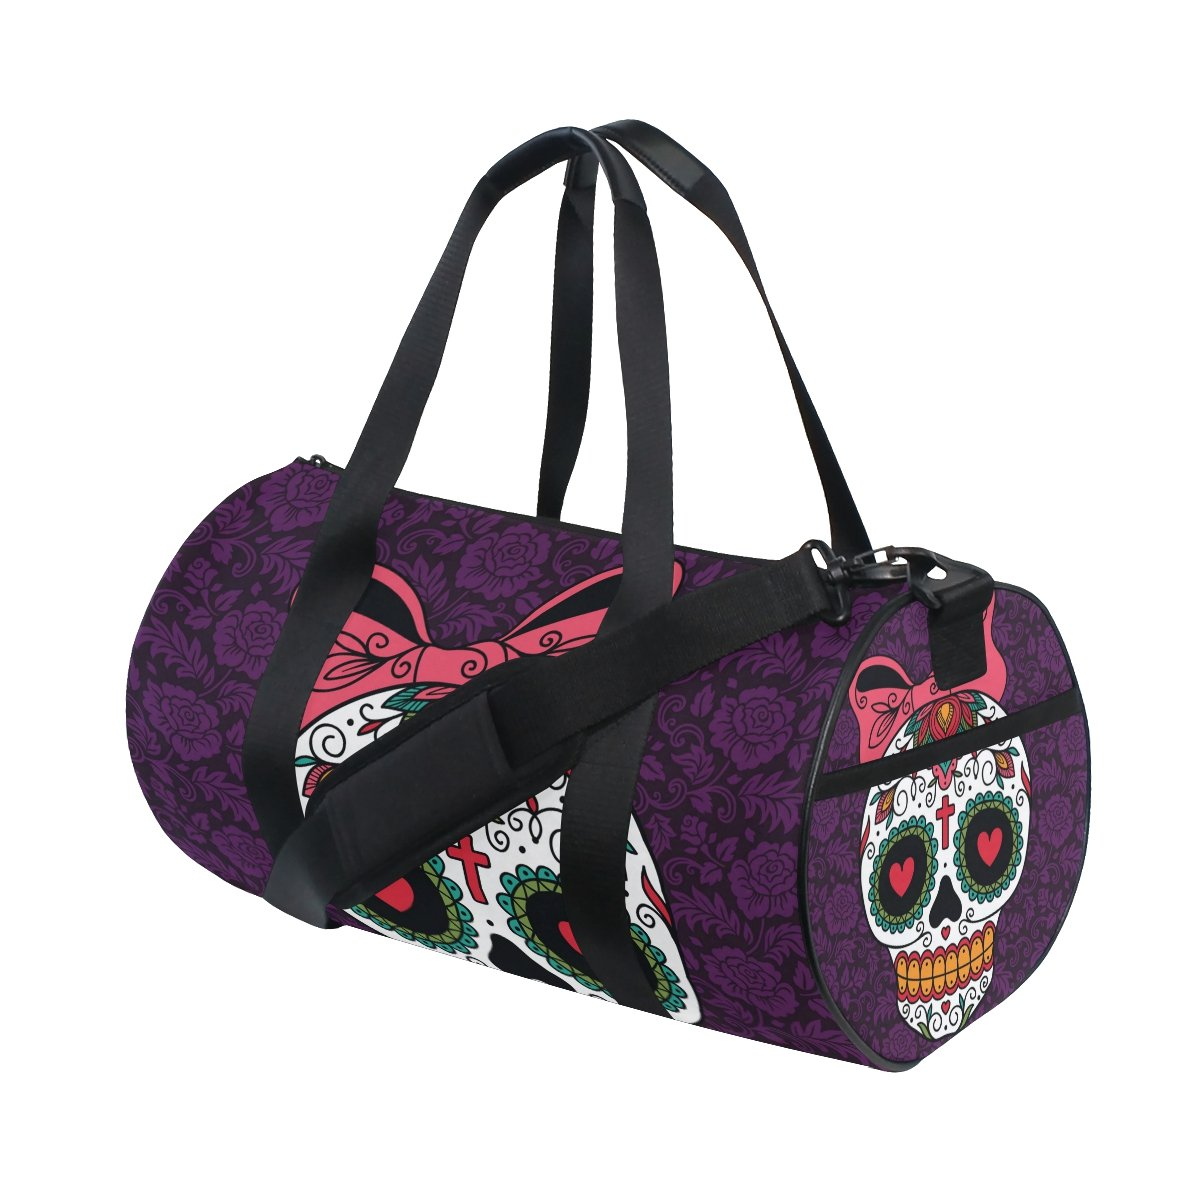 Naanle Mexican Sugar Skull Girl Purple Floral Day Of The Dead Gym bag Sports Travel Duffle Bags for Men Women Boys Girls Kids